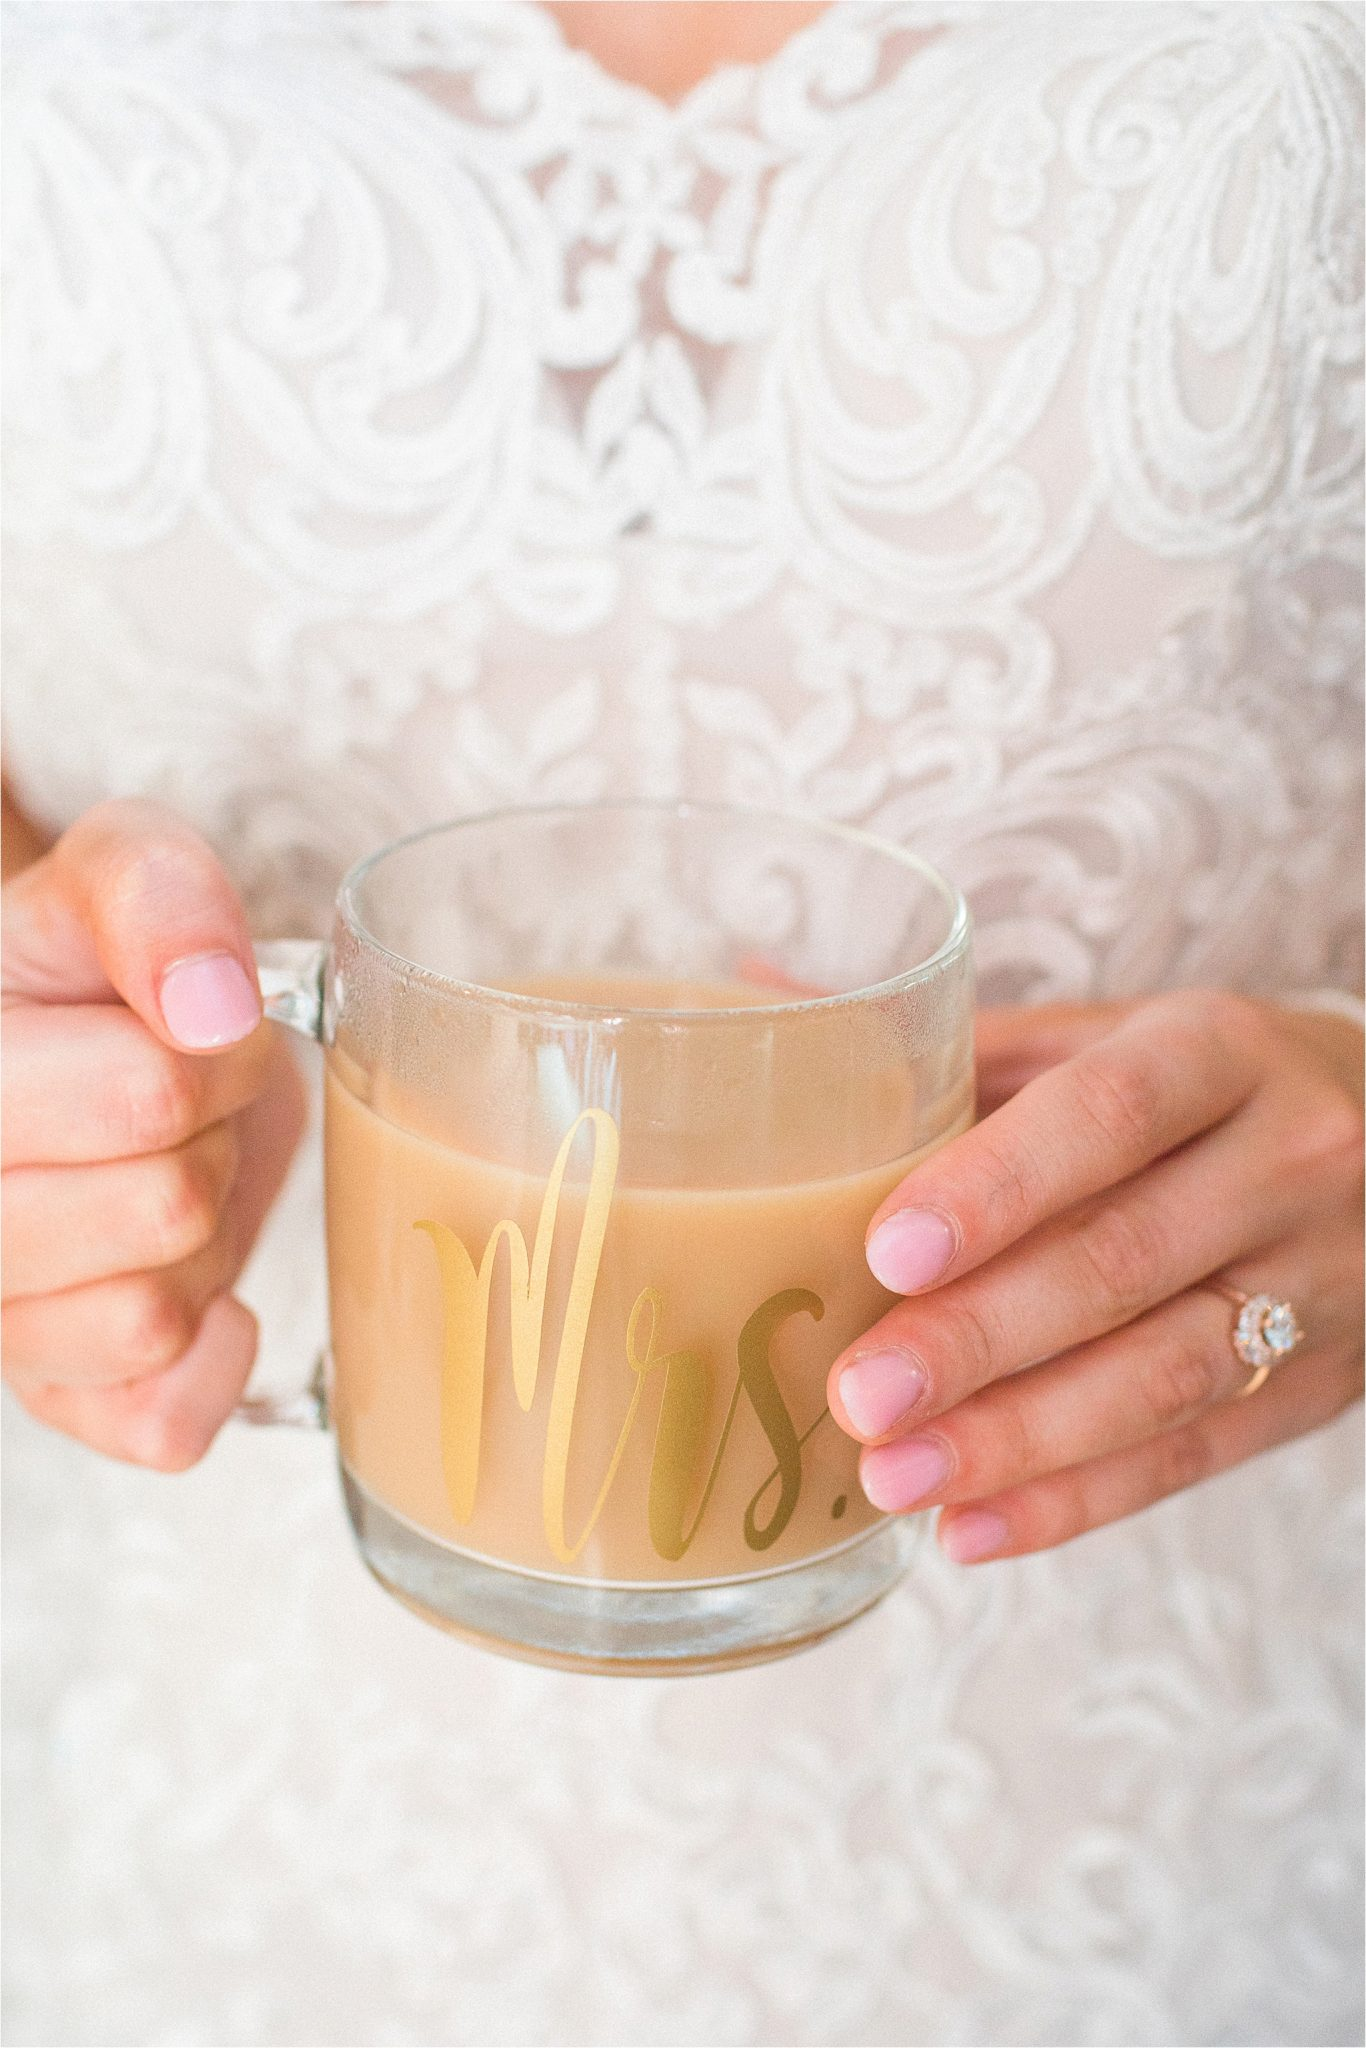 Mrs.-Mug-glass-lace-wedding-dresses-gold-cursive-coffee-reception